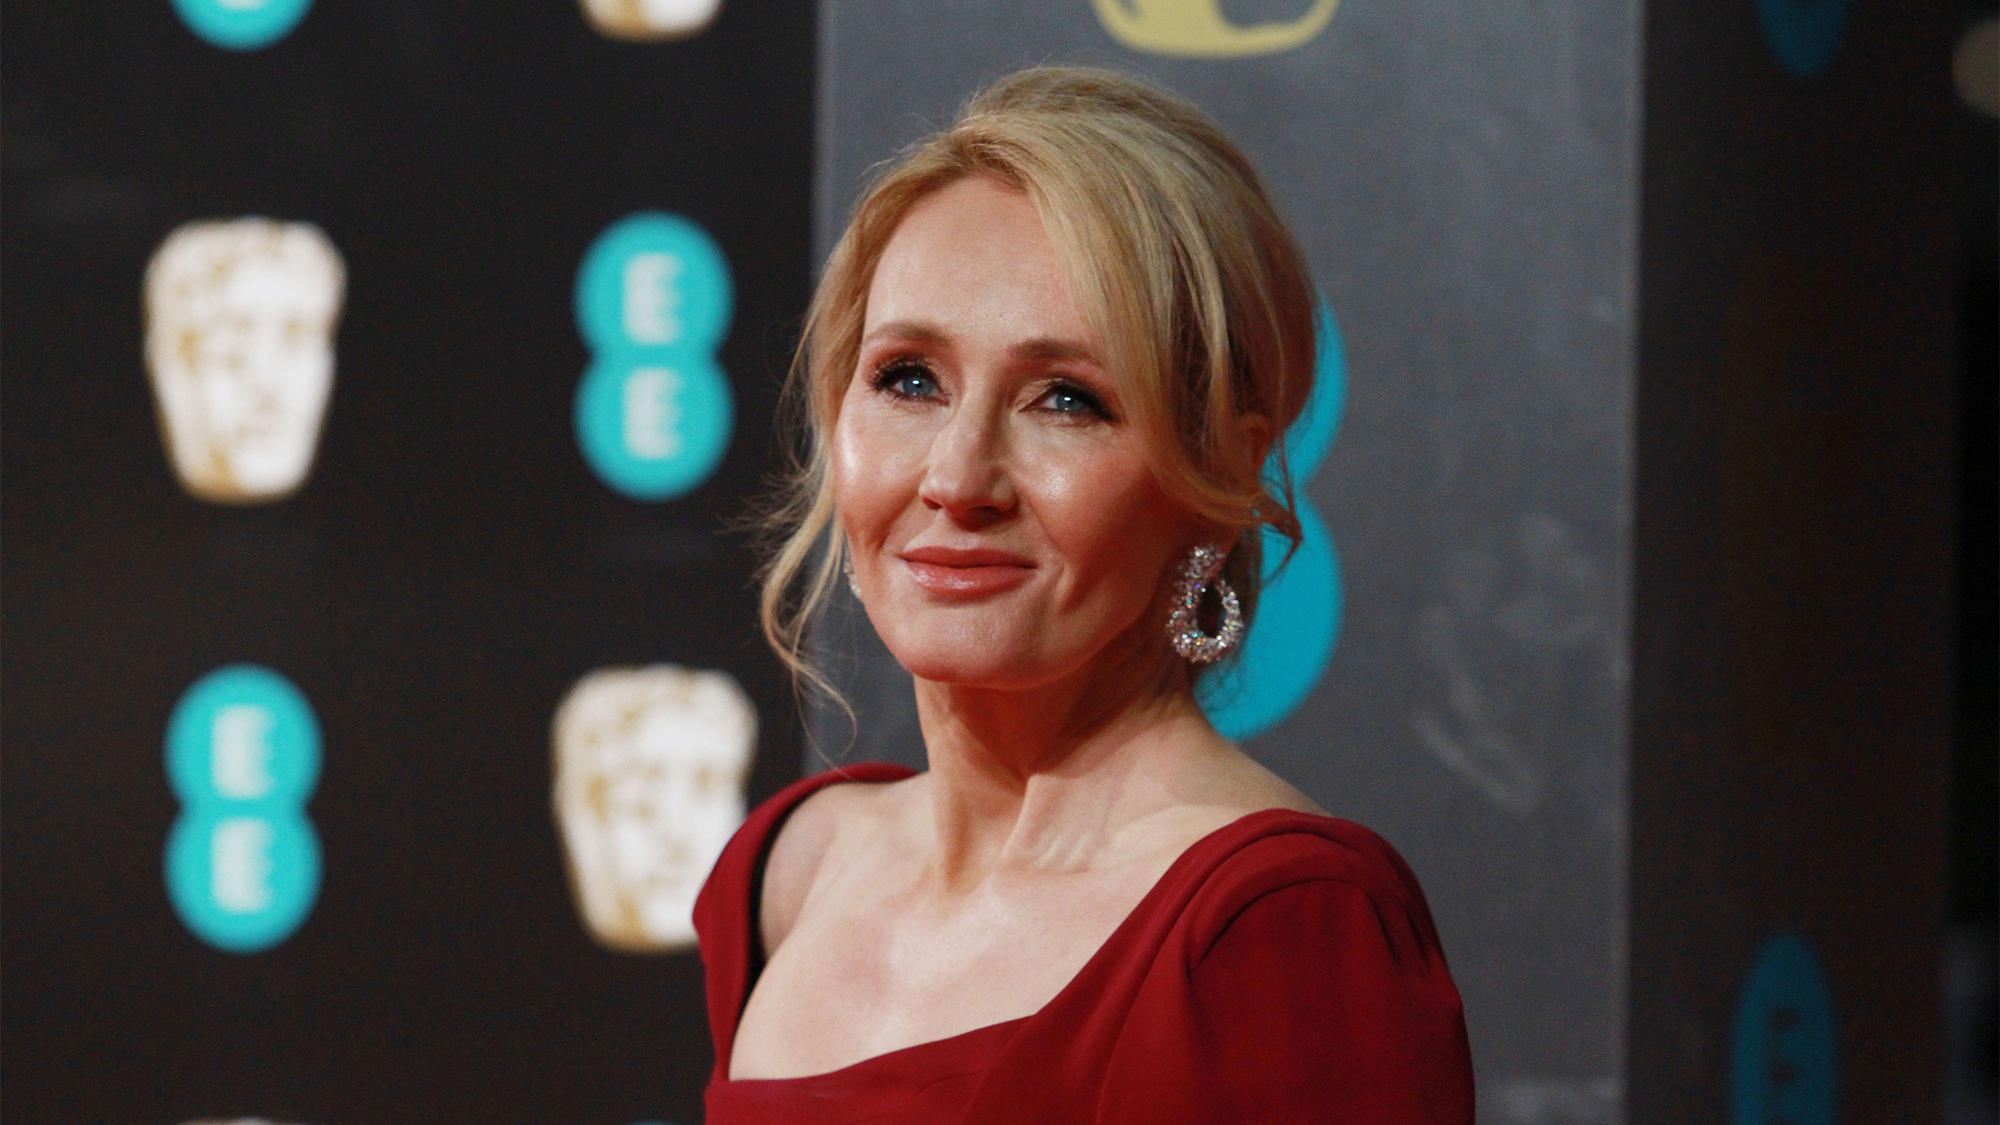 jk rowling writing tips Have you read the amazing interview with j k rowling here she describes the writing tips, the writing process, and some life-changing writing quotes.